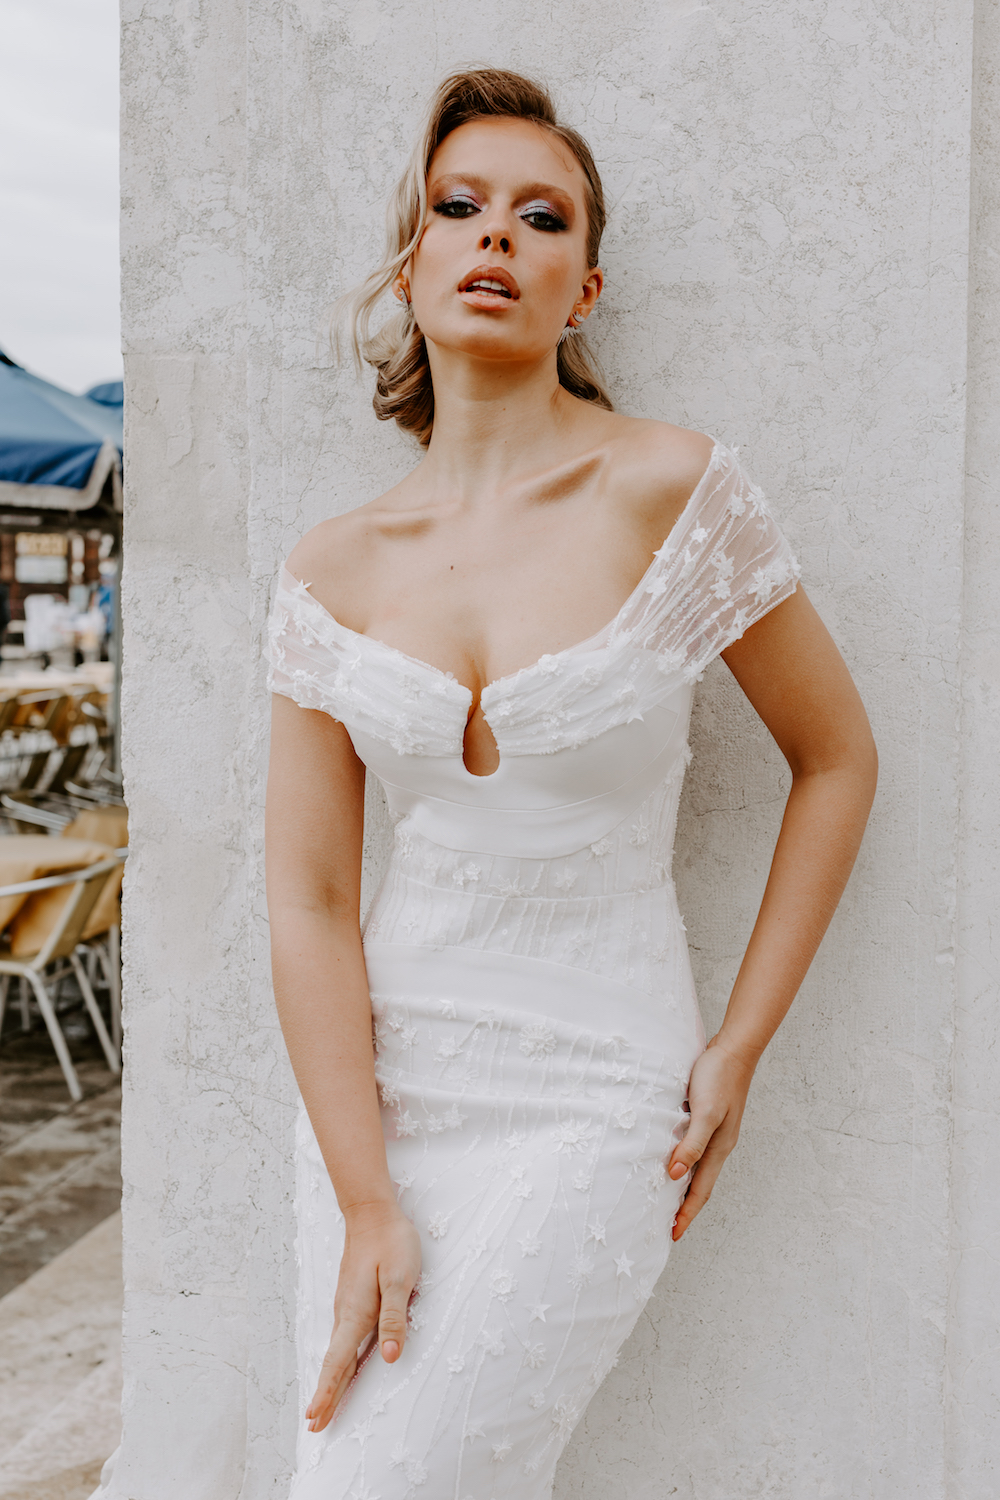 Georgia Young Couture Prosecco Gown | Wedding dresses under $7,500 | LOVE FIND CO. Bridal Directory